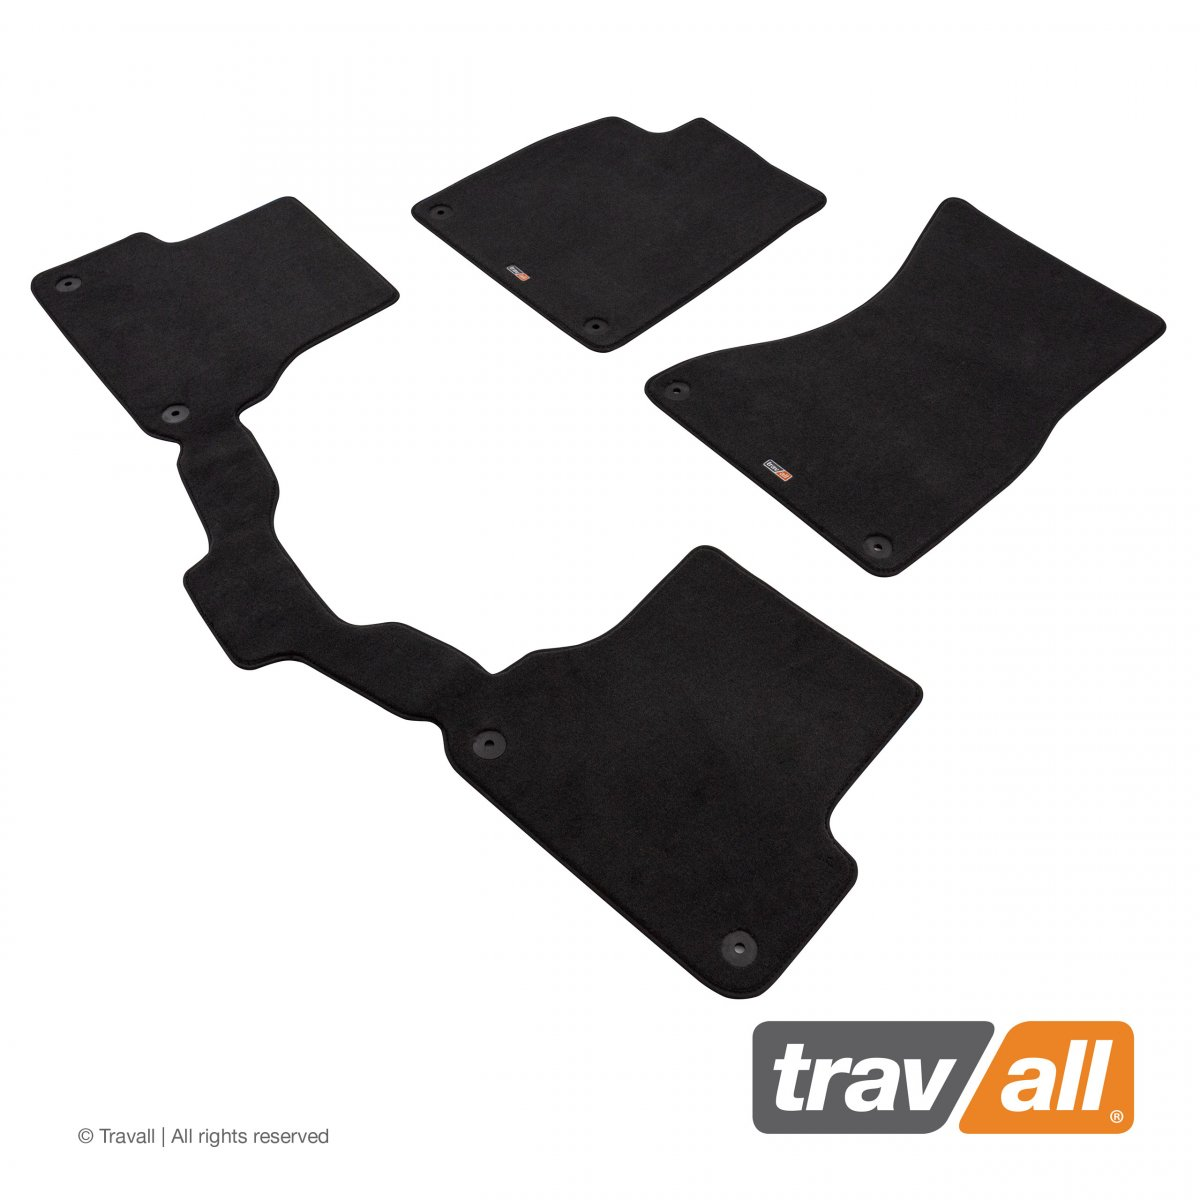 Travall® MATS [LHD] for Audi A6/S6 Saloon / Estate (2011 - 2018)